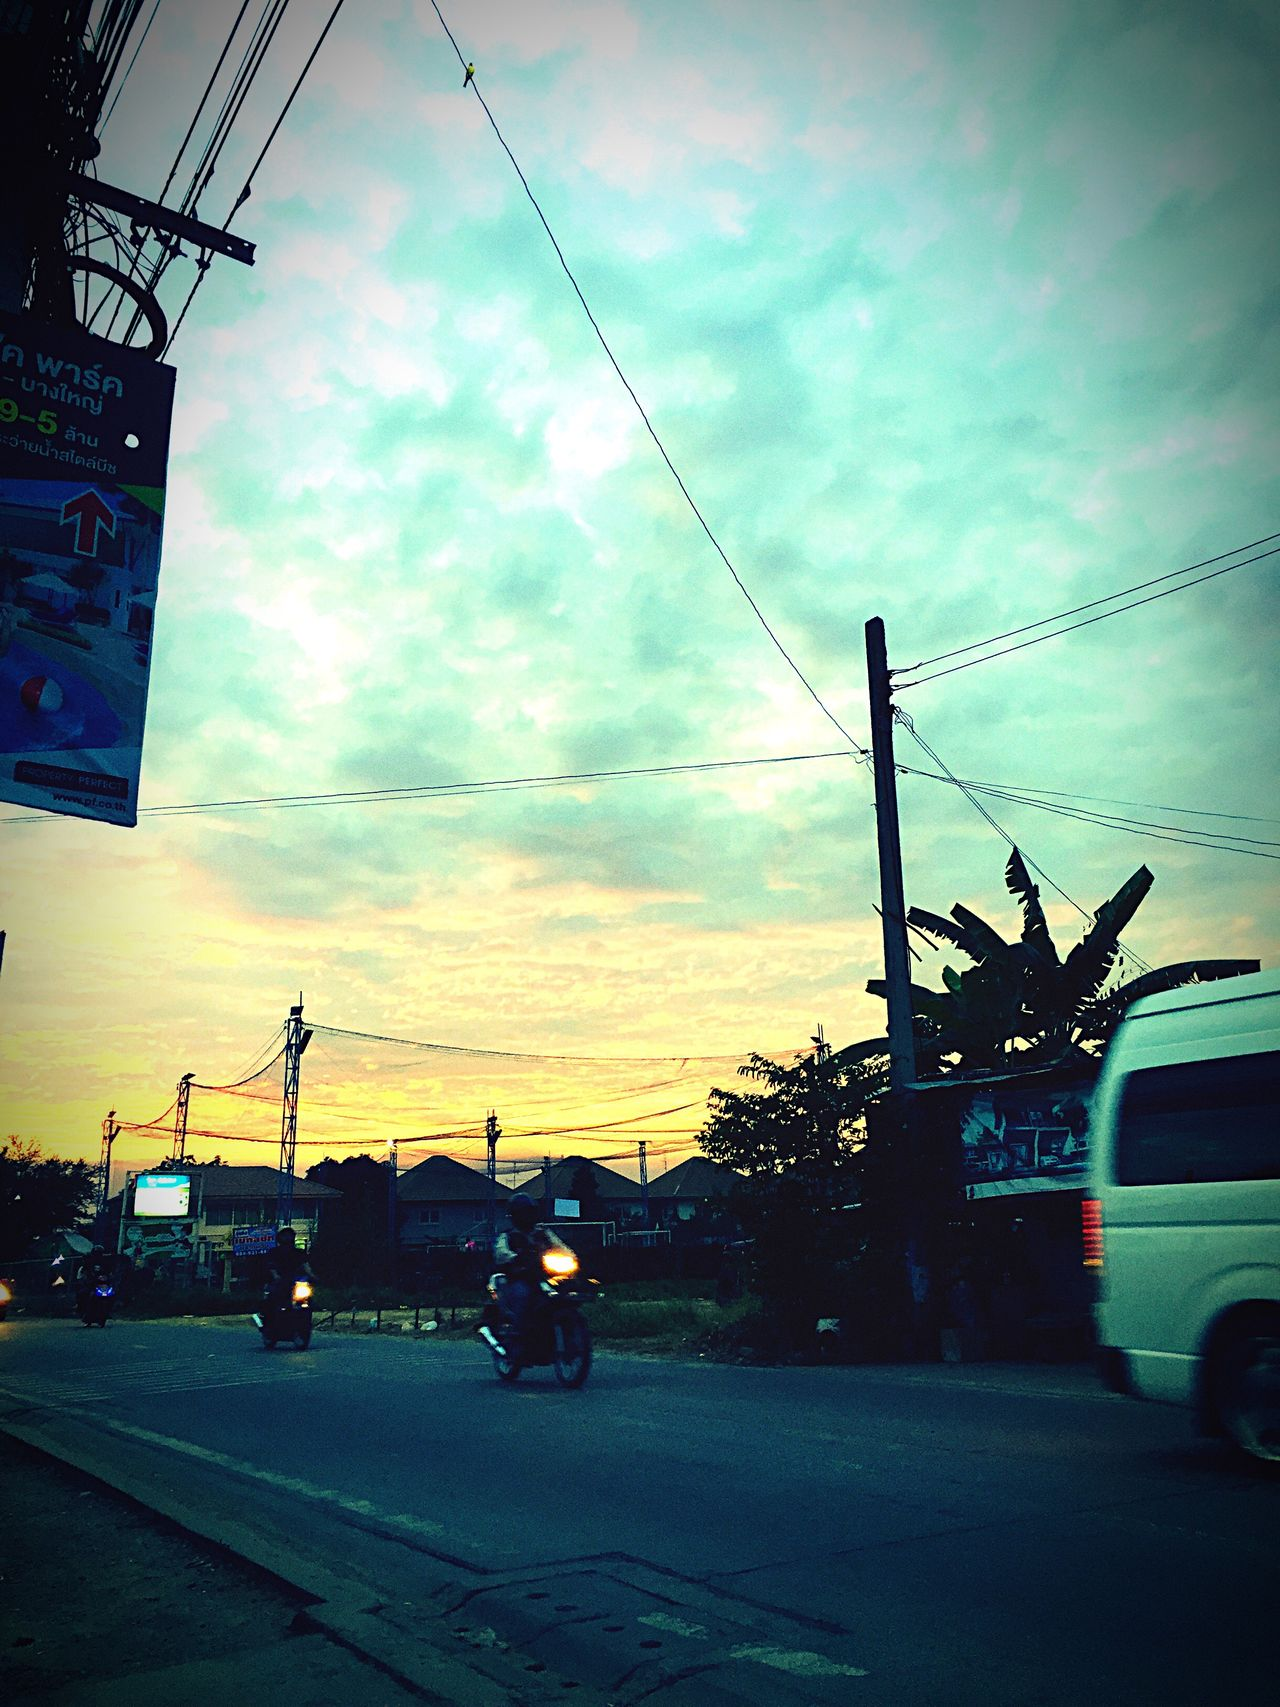 Transportation Mode Of Transport Land Vehicle Sky Car Cloud - Sky Real People Outdoors Day Real People, Real Lives 3XSPhotographyUnity Sunset Finding New Frontiers 3XSPhotographyUnity Weird looking sky today in Thailand...